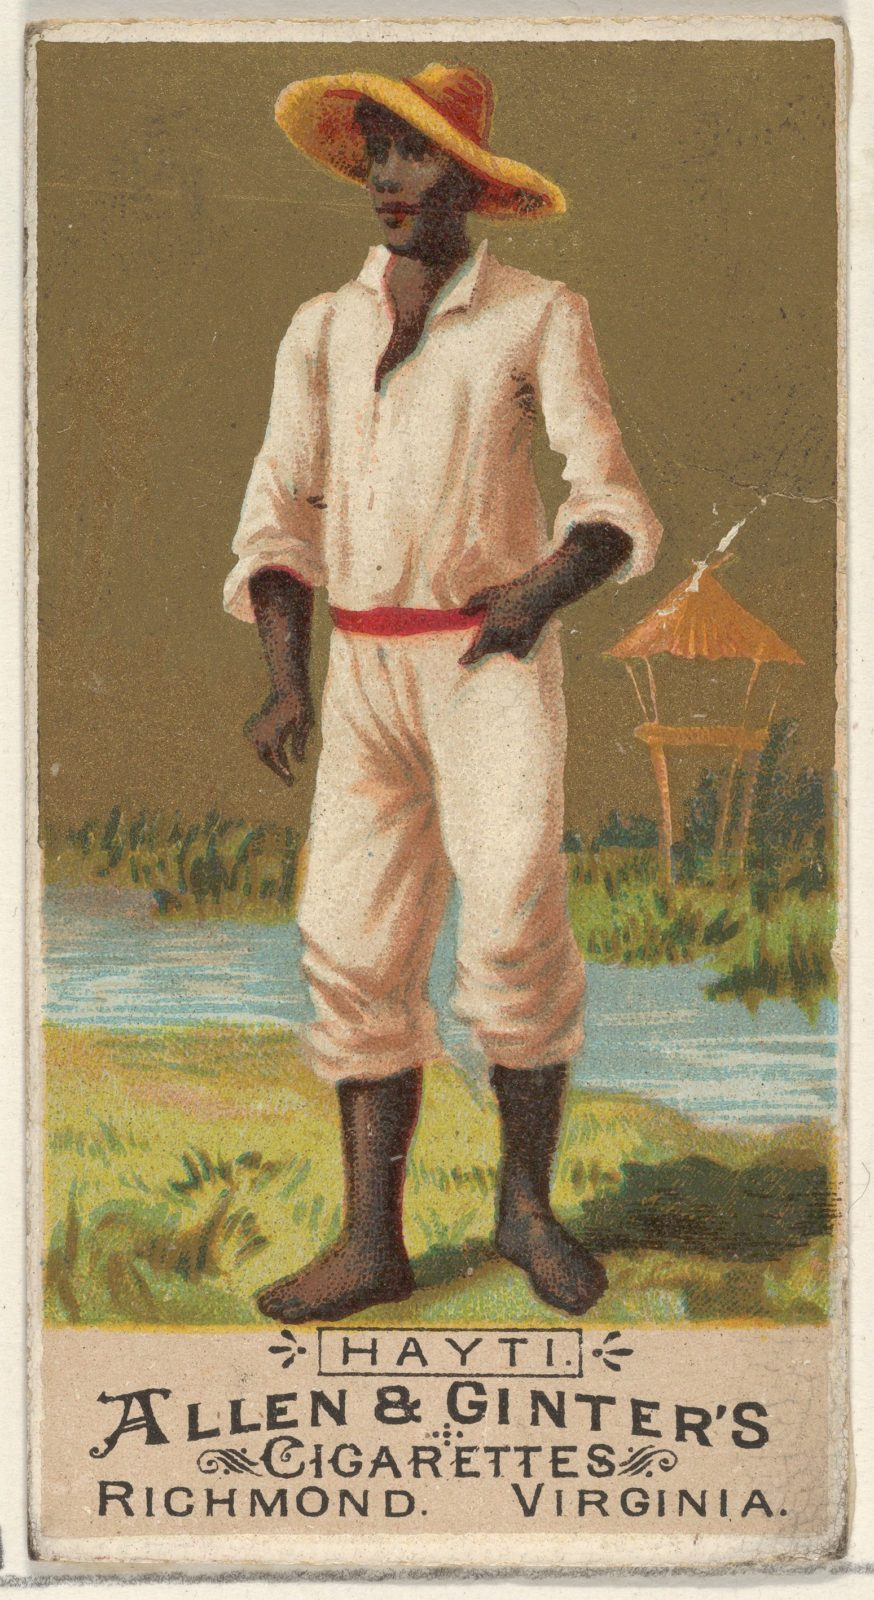 Haiti, from the Natives in Costume series (N16) for Allen & Ginter Cigarettes Brands